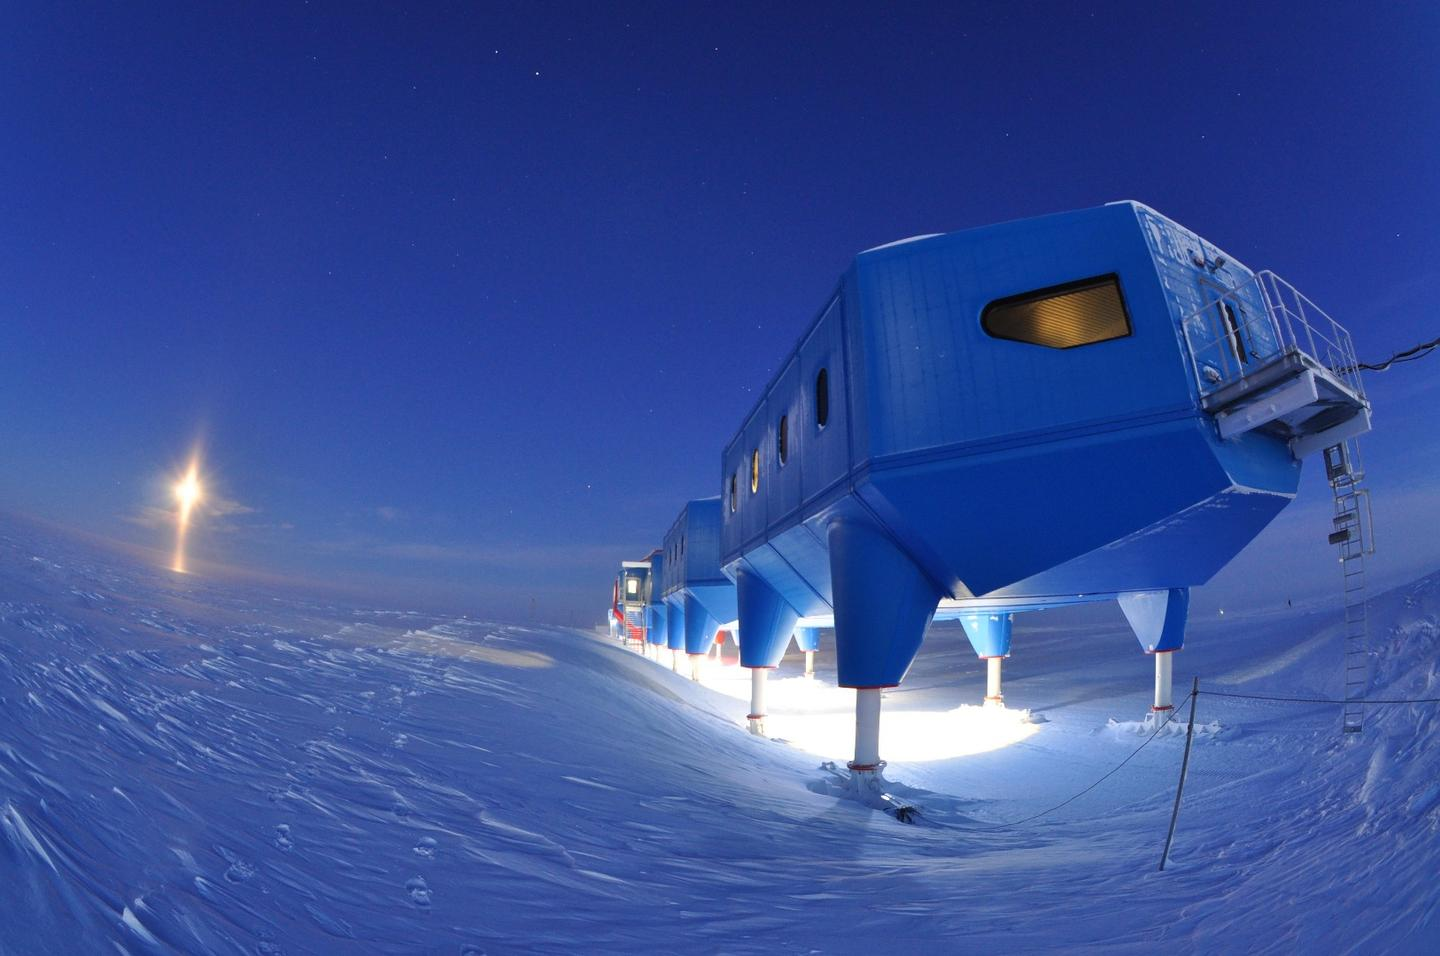 The Halley VI will be towed 23 km (14.3 miles) by specialist bulldozers